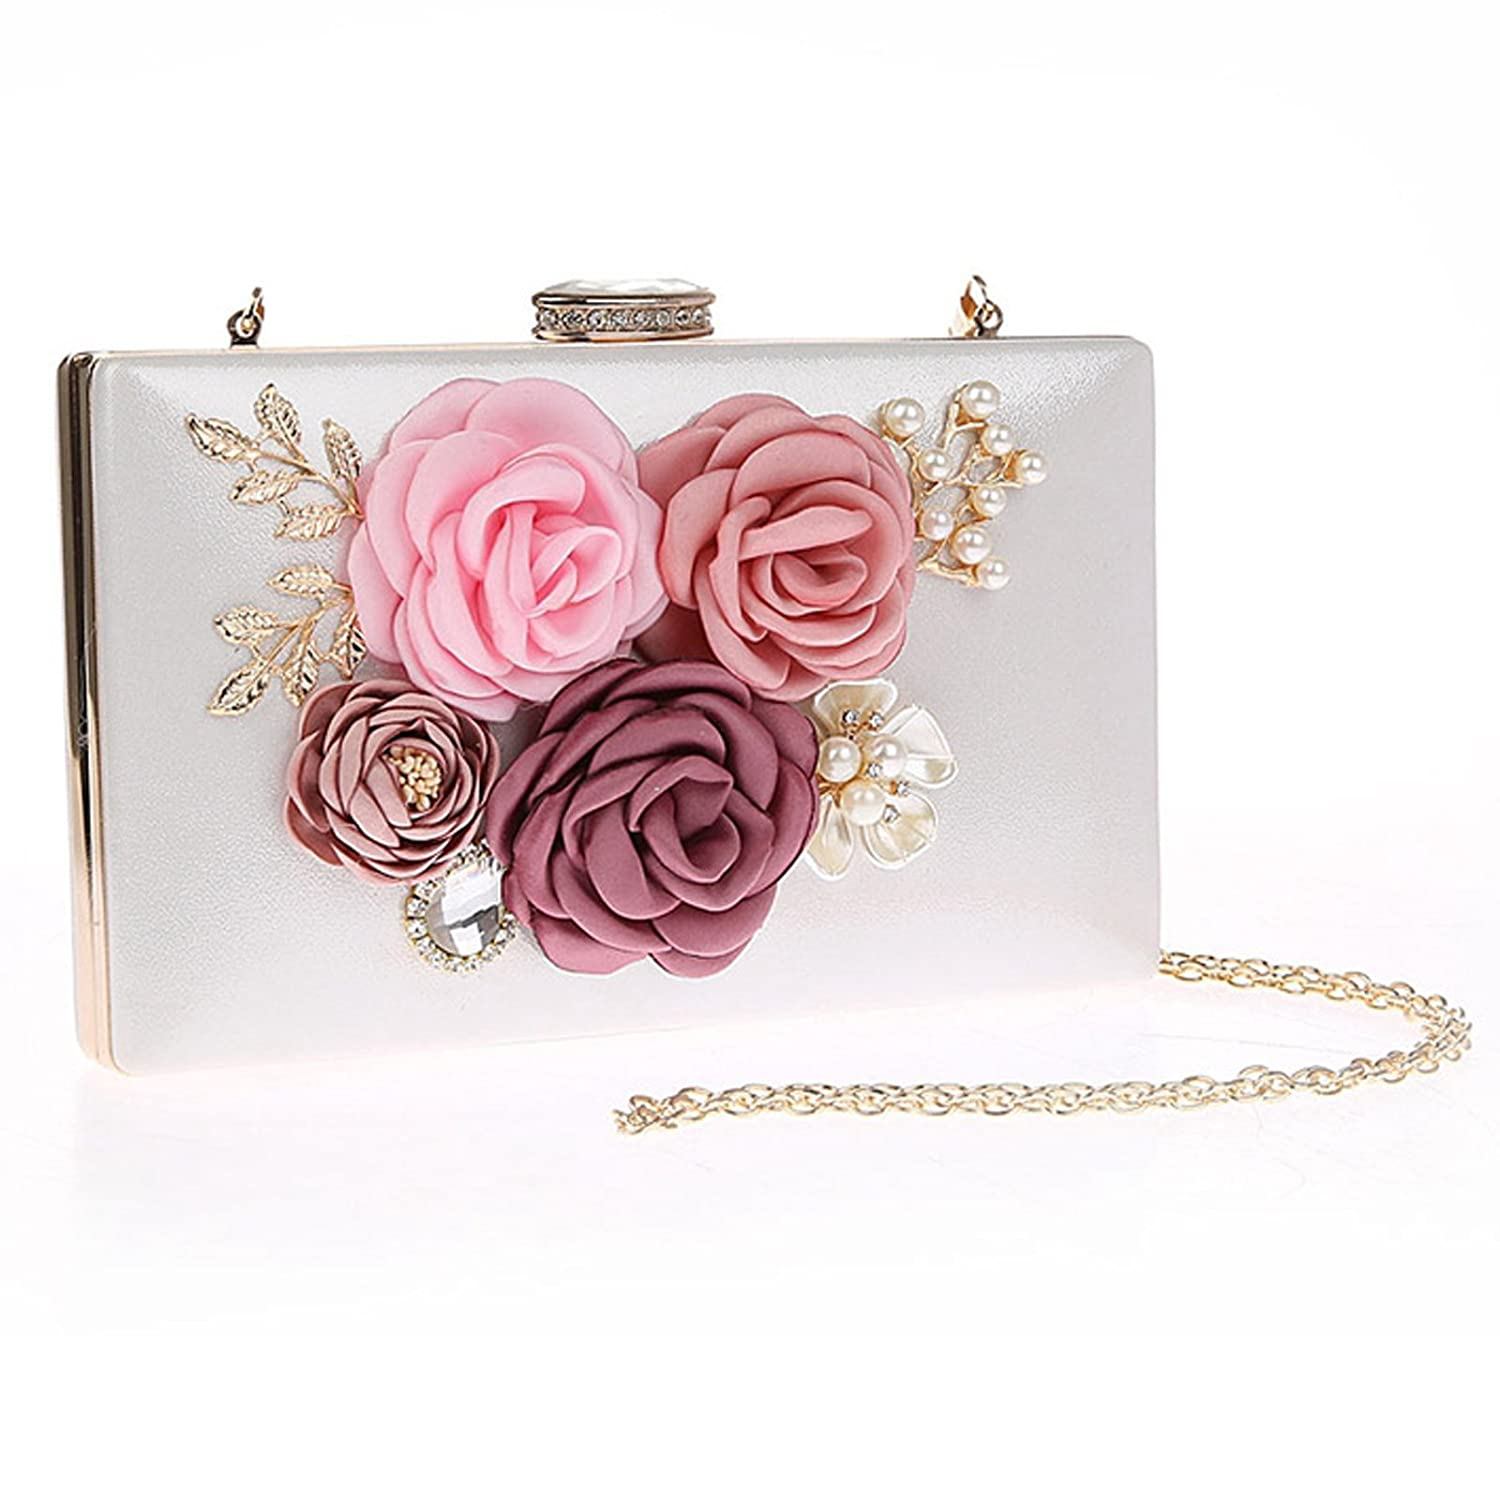 Womens Floral Evening Bag Clutch Purse for Wedding Party Prom